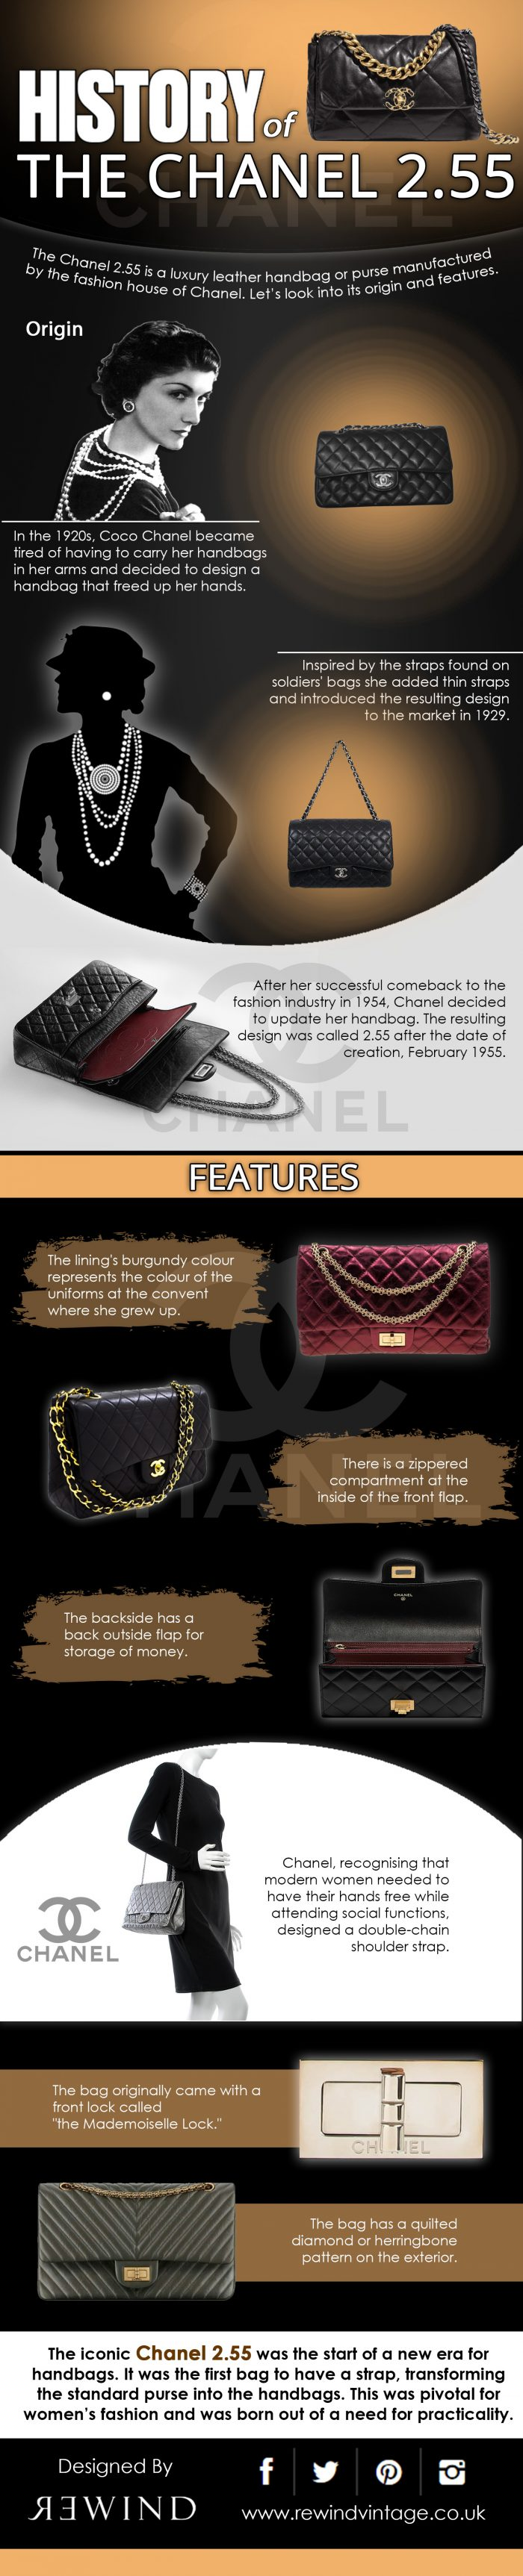 History and Features of Chanel 2.55